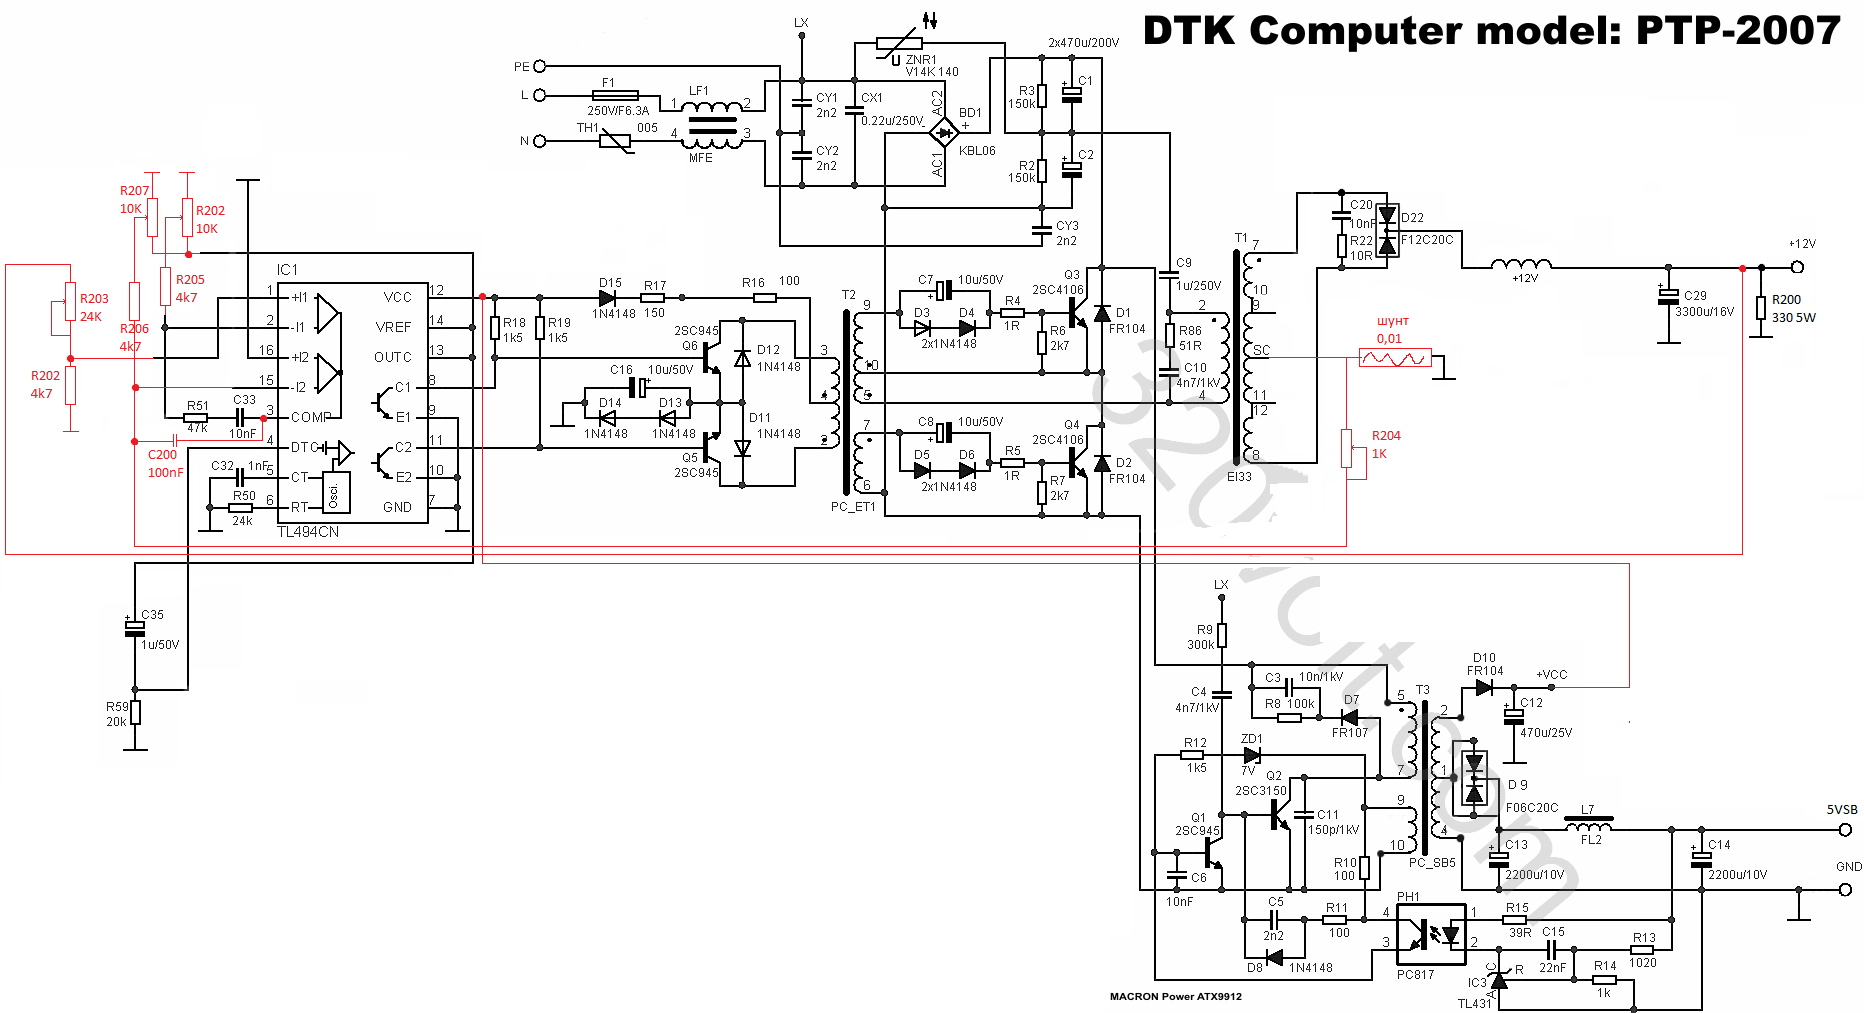 atx-power-supply-service-manual-dtk-200w.png.